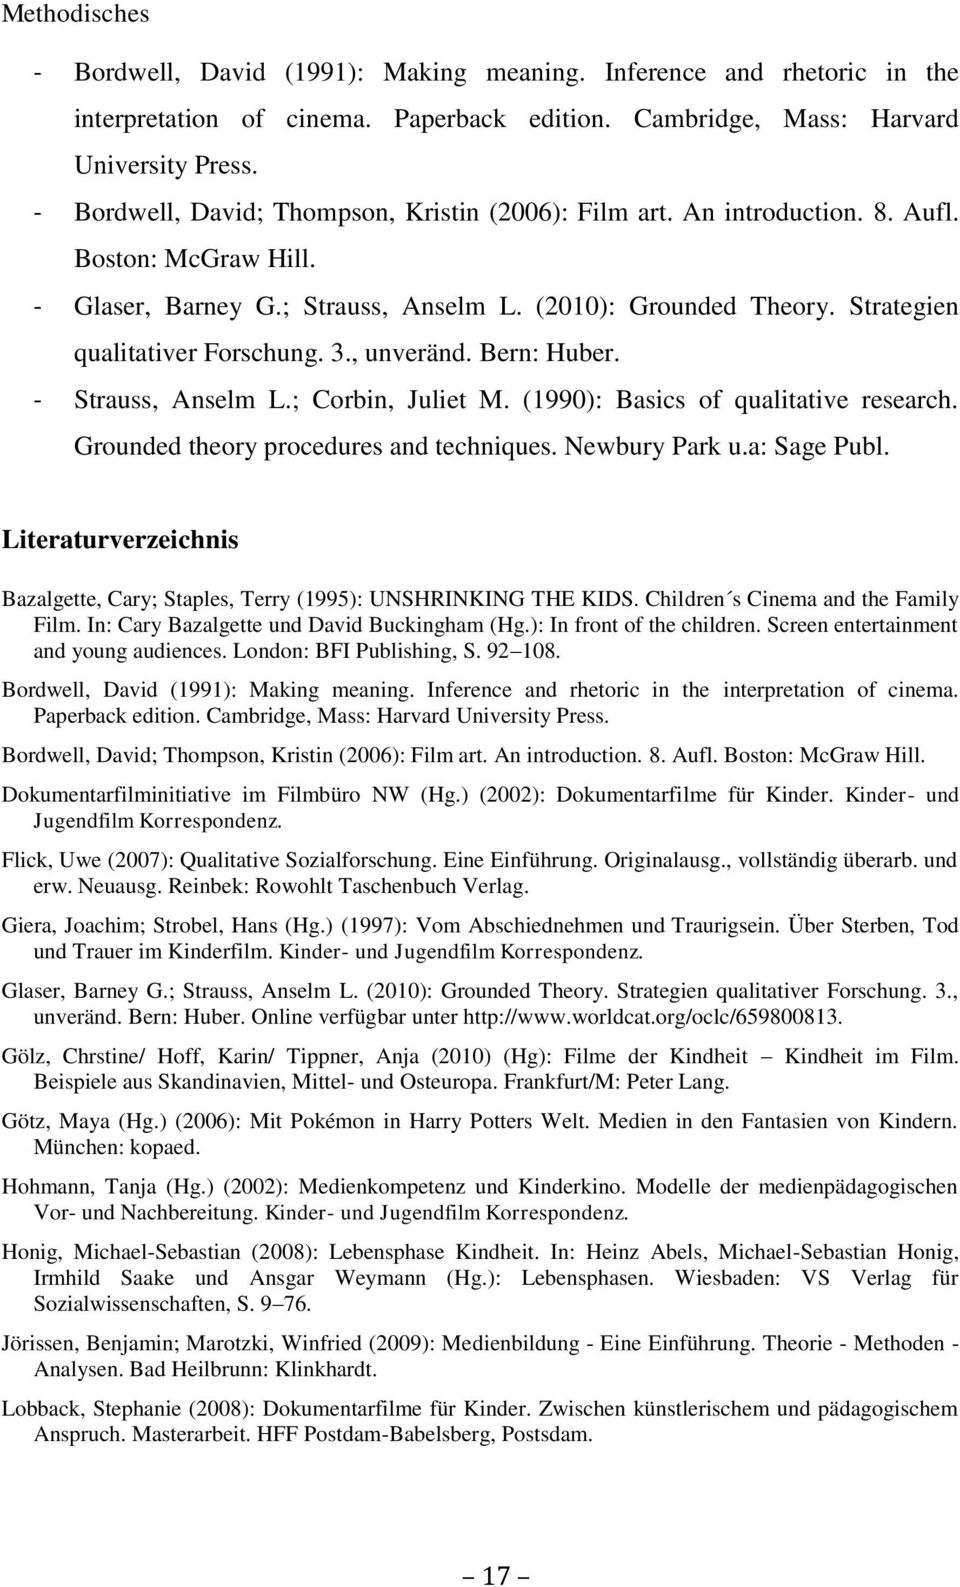 Strategien qualitativer Forschung. 3., unveränd. Bern: Huber. - Strauss, Anselm L.; Corbin, Juliet M. (1990): Basics of qualitative research. Grounded theory procedures and techniques. Newbury Park u.